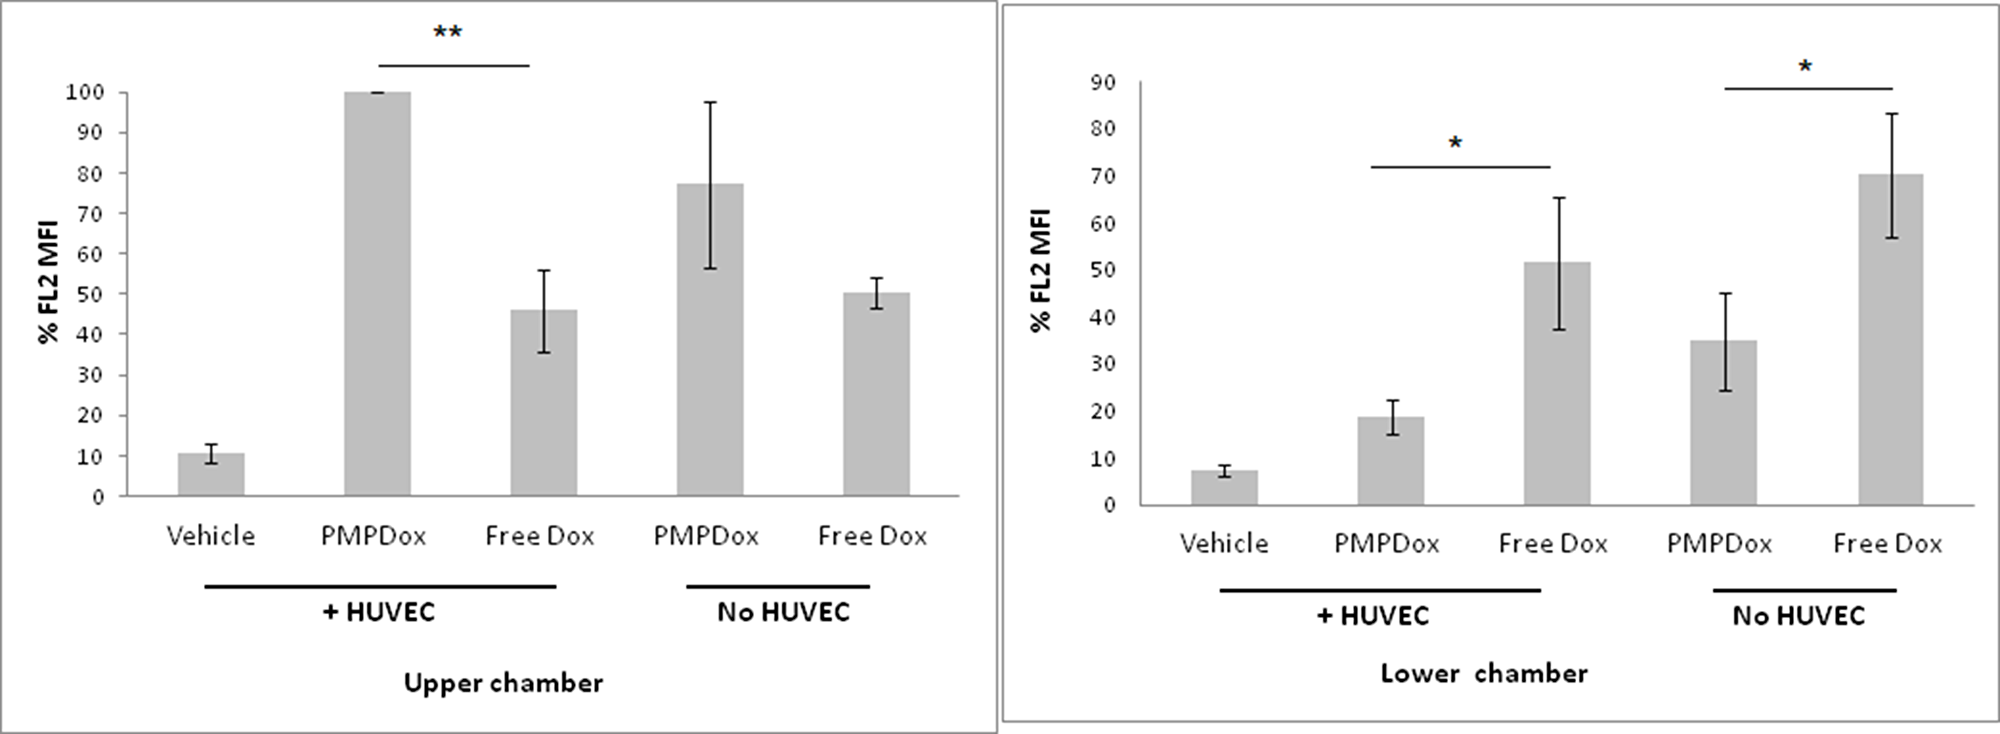 Uptake of Doxorubicin by HL 60 cells in upper and lower chambers of Transwell plates.